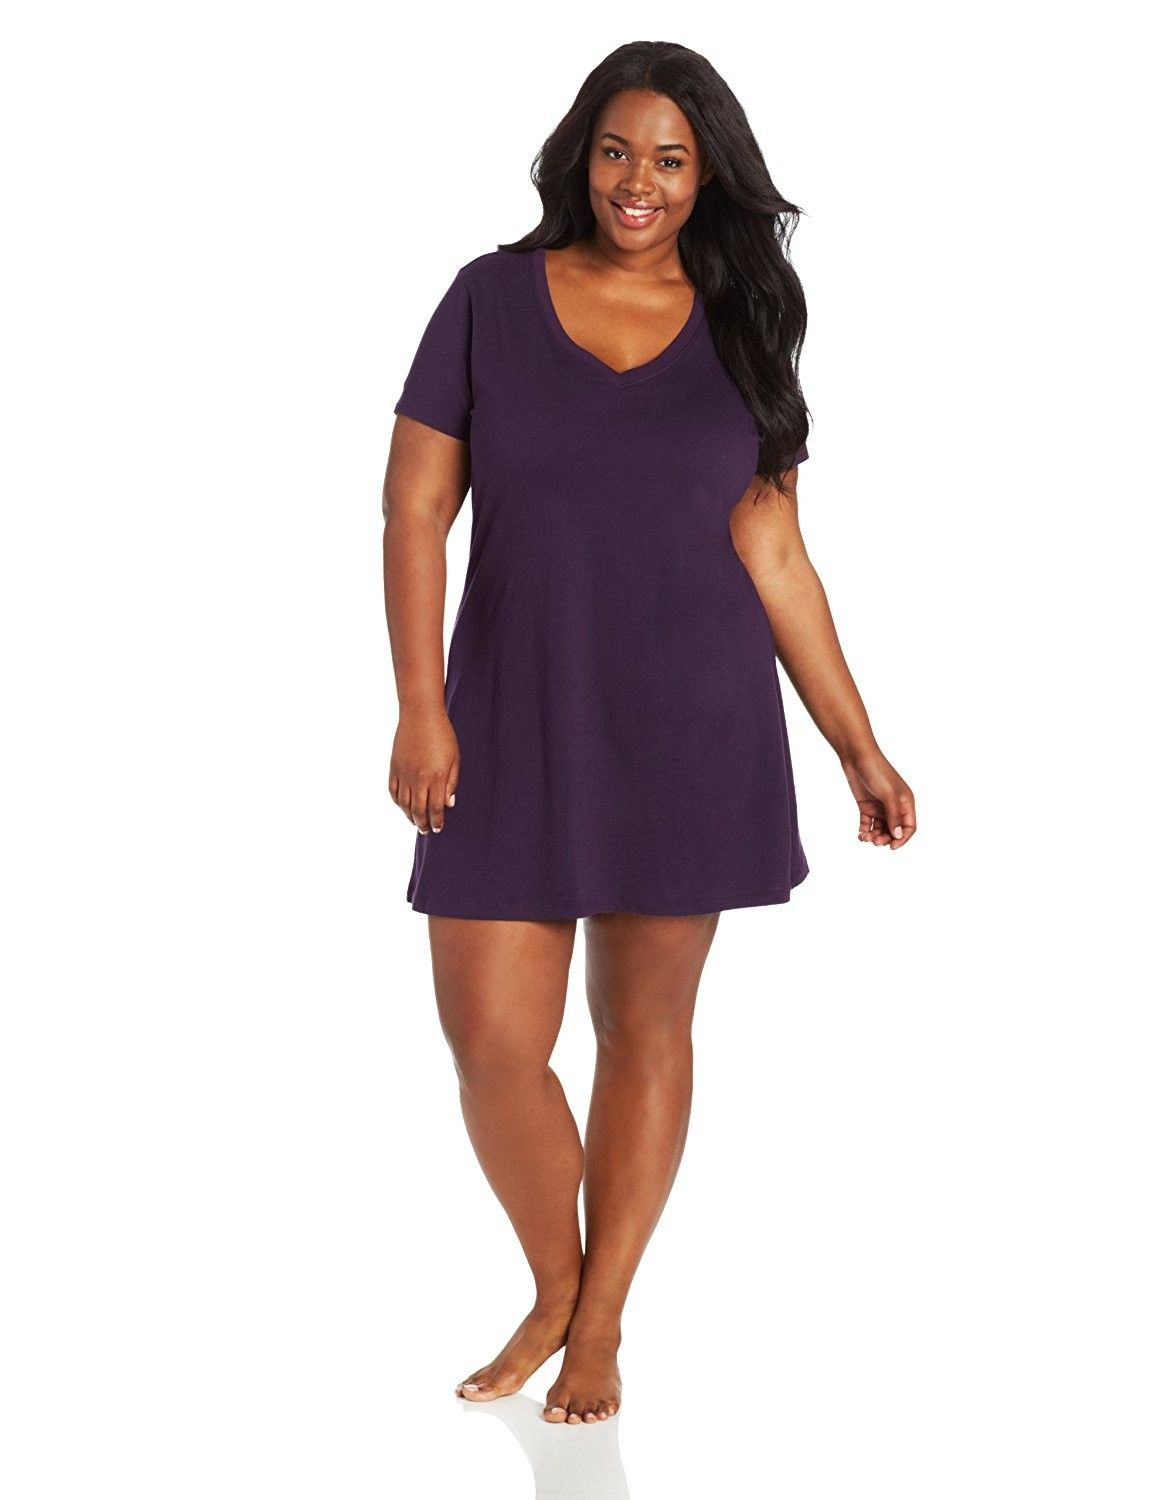 dbd321a5f40 Women s Plus-Size Sleep Shirt - Eggplant - CZ11F2AQOL3 in 2019 ...